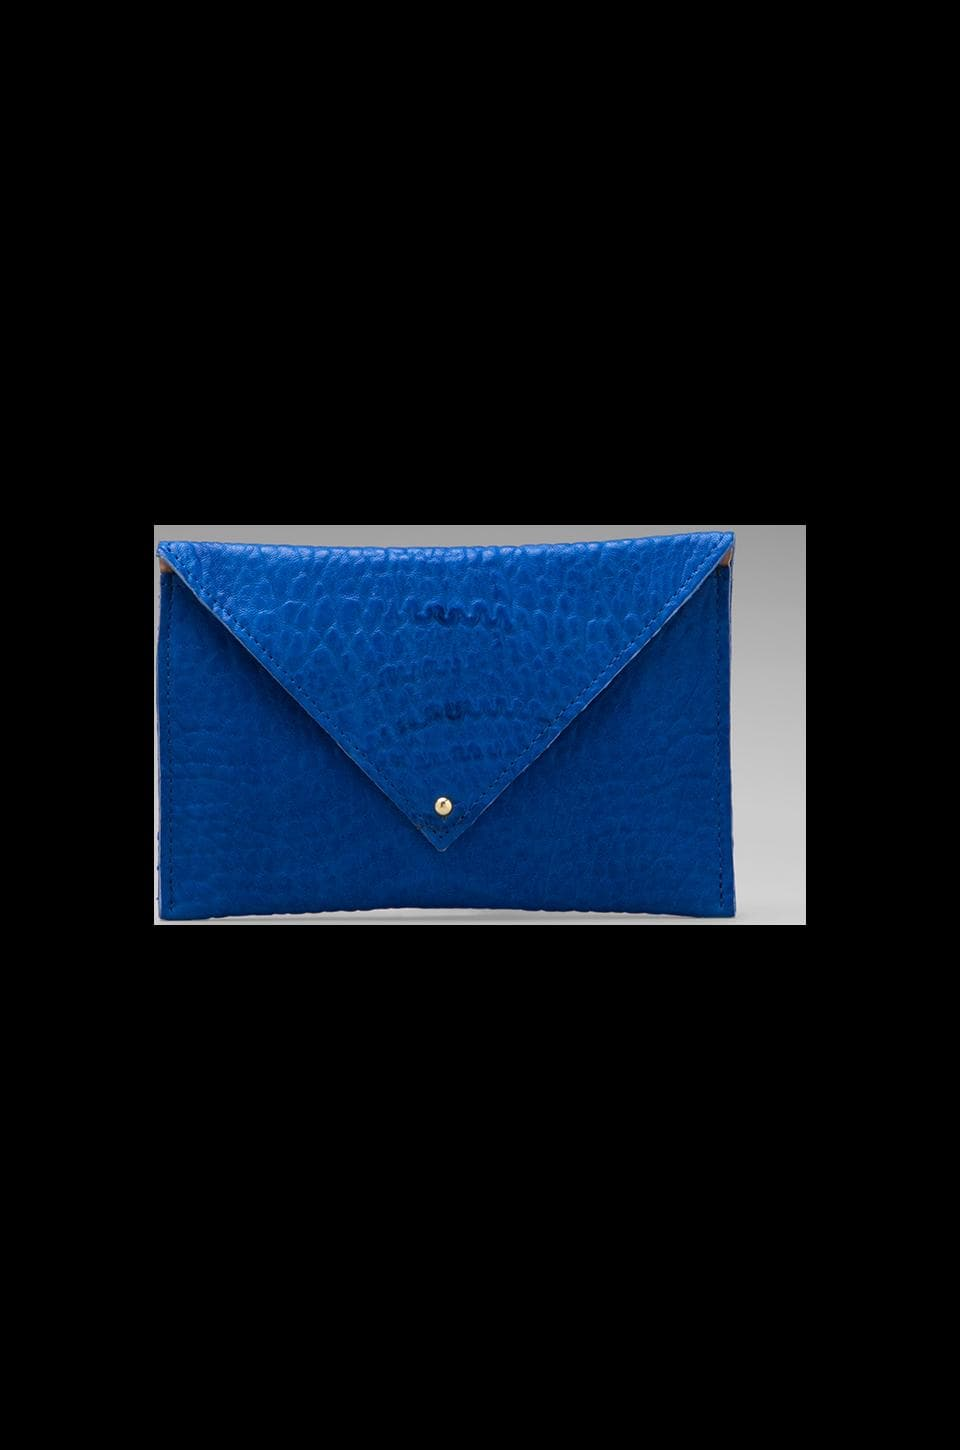 Clare V. Grande Pochette in Blue Pebble